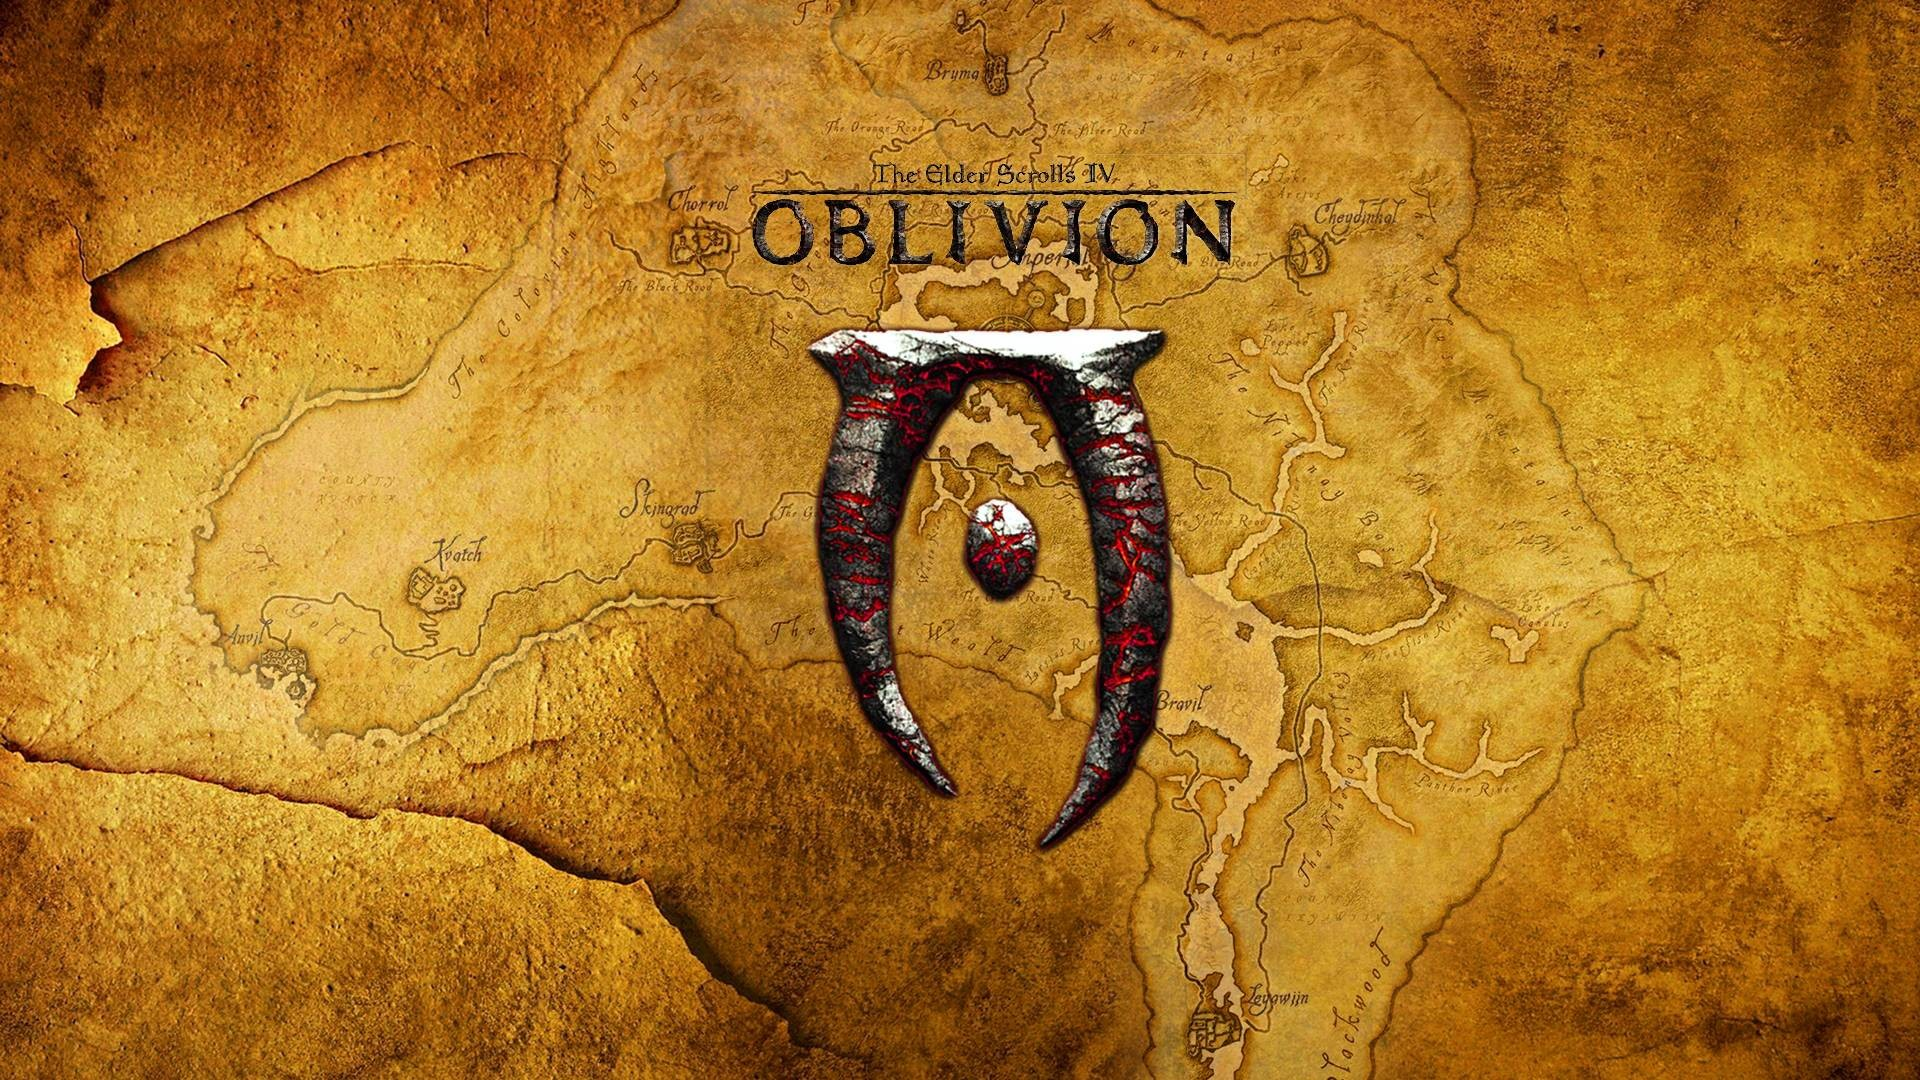 The Elder Scrolls IV: Oblivion Remastered - мод размером 3.4 ГБ